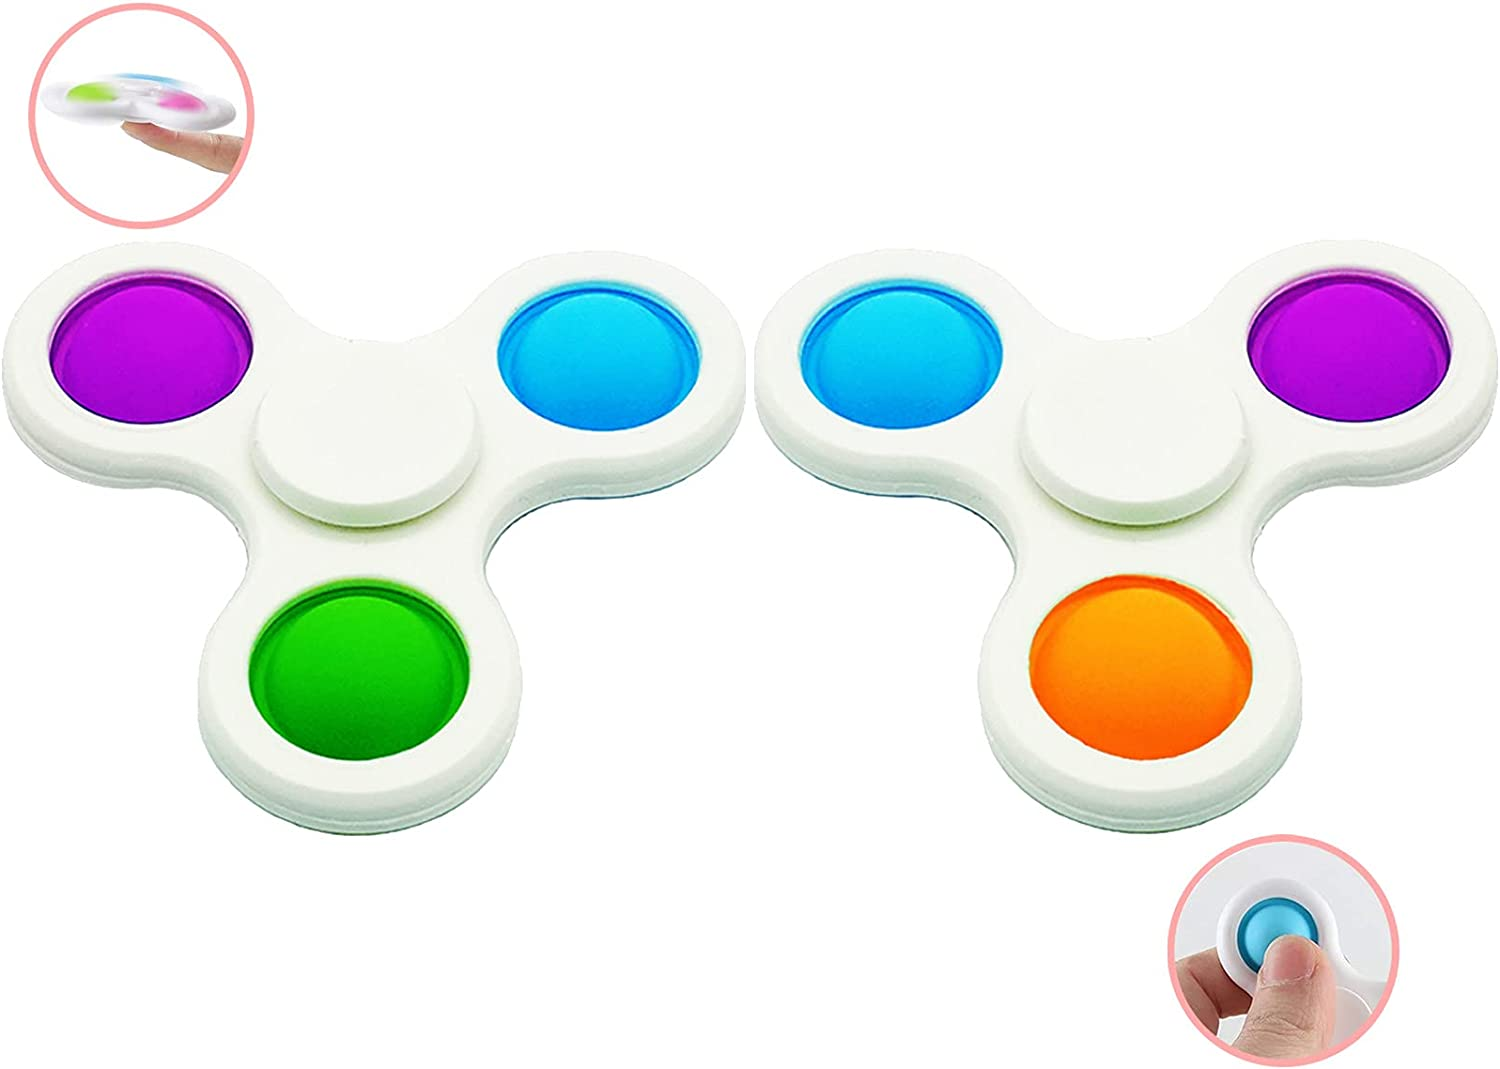 Depointer Fidget Spinner Push pop Bubble Sensory Fidget Toy, Fidget Dimple Spinner Stress Relief Finger Toy ,Hand Spinner Toys Simple Office and Desk Toys for Kids Adults